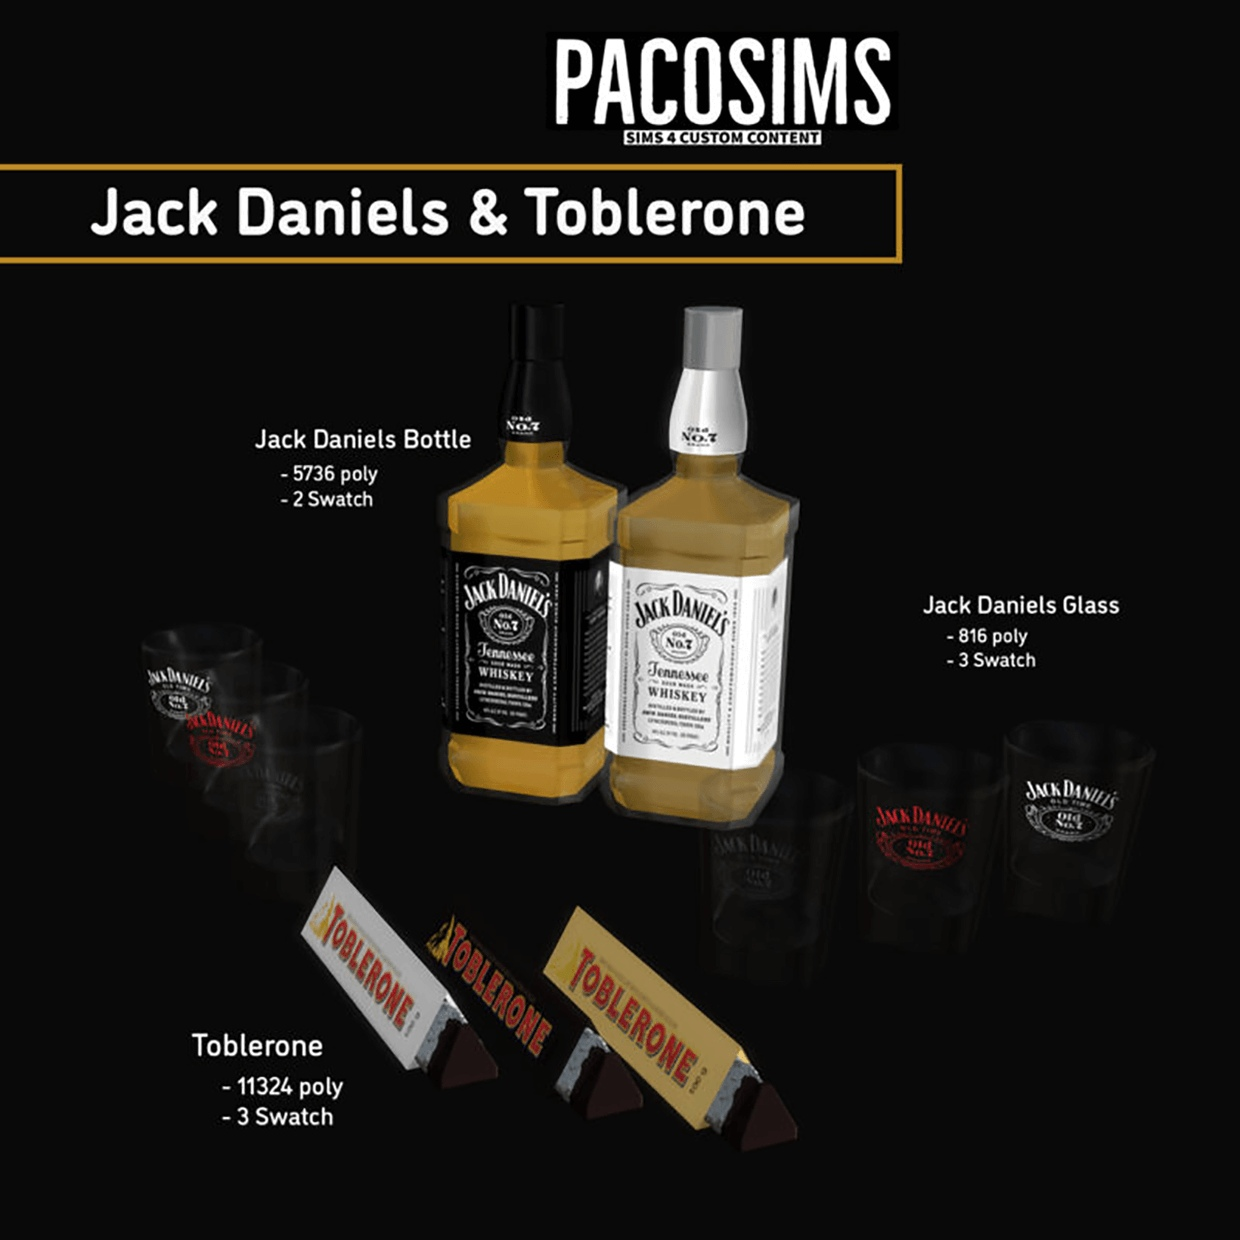 Toblerone and jack daniels by PacoSims